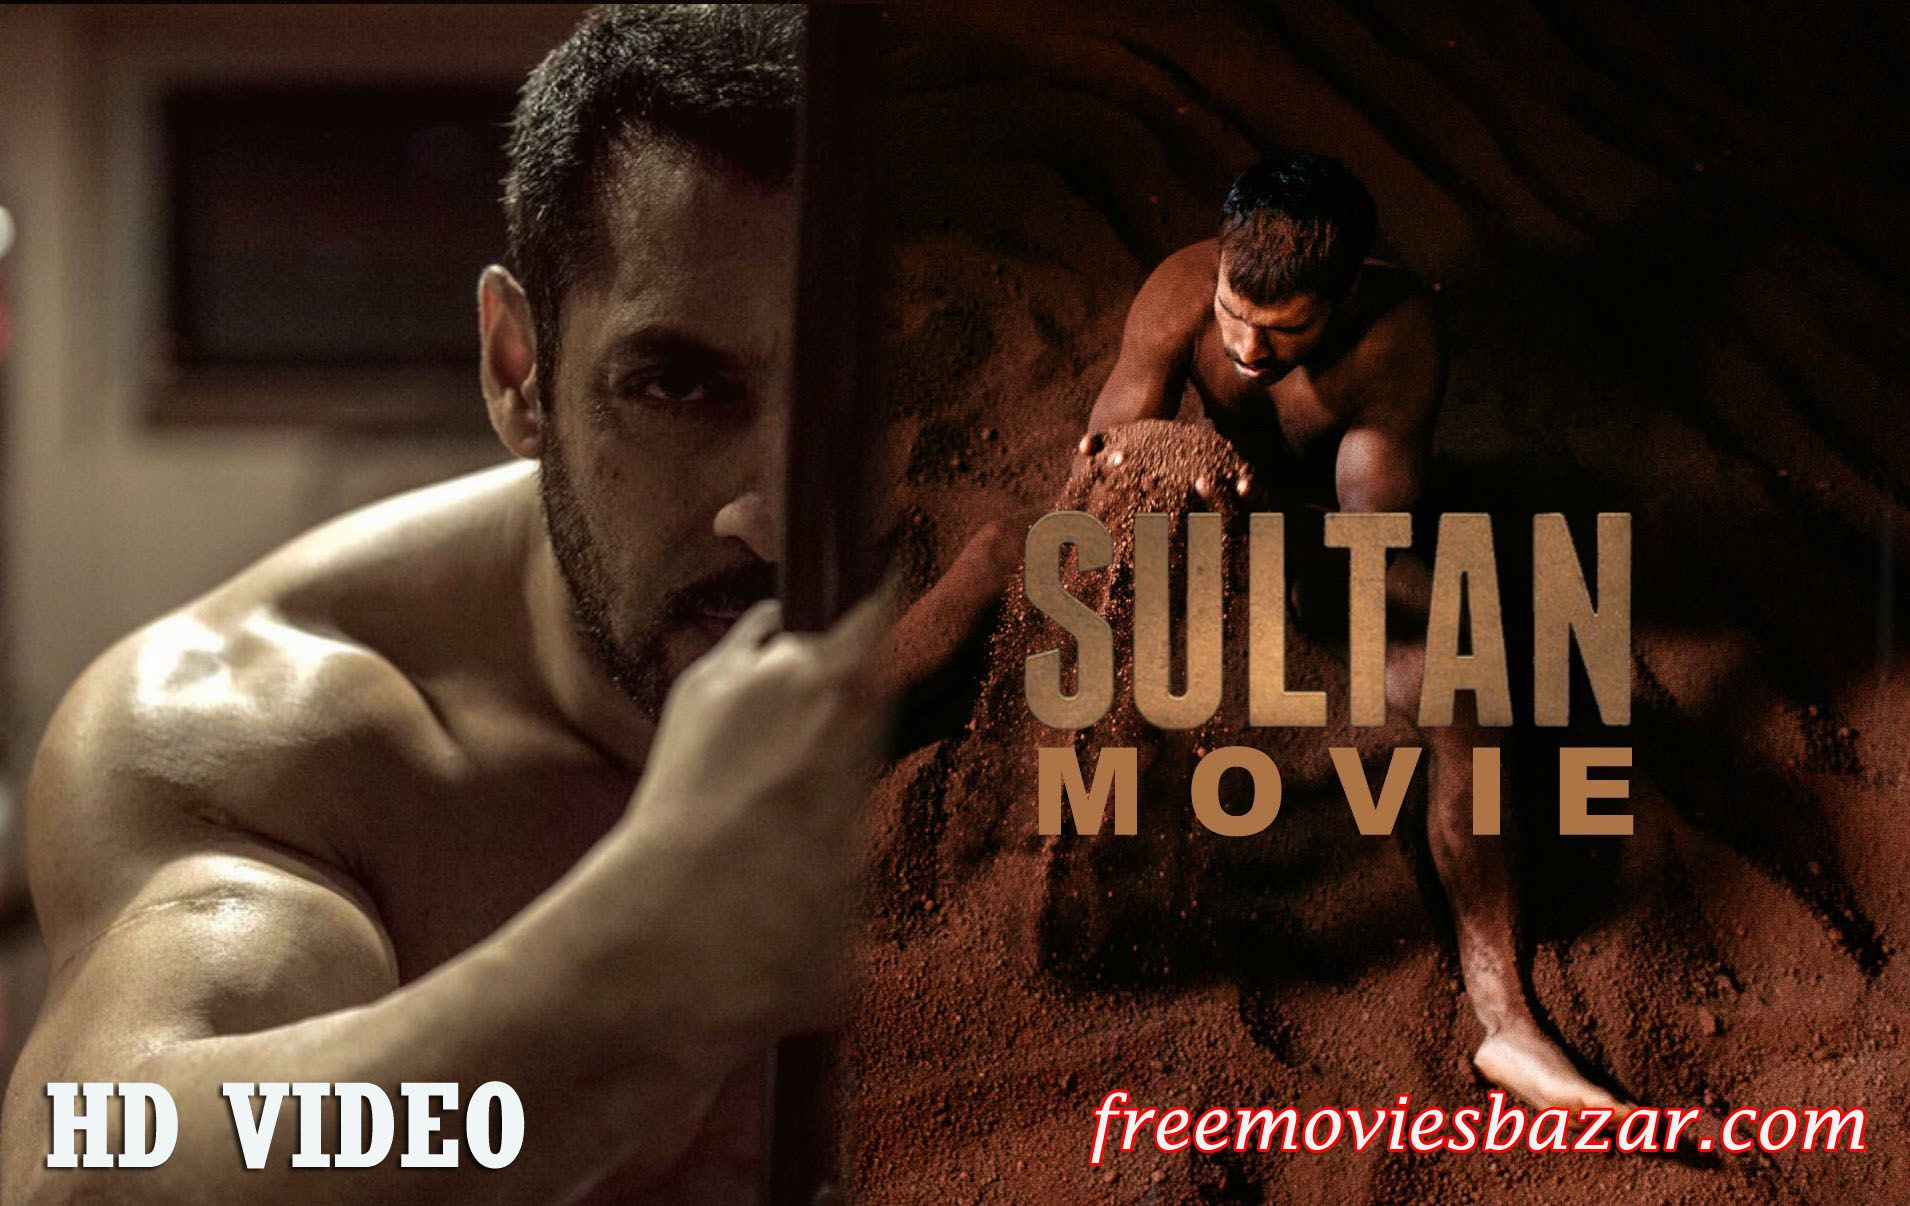 torent com free hindi movie download